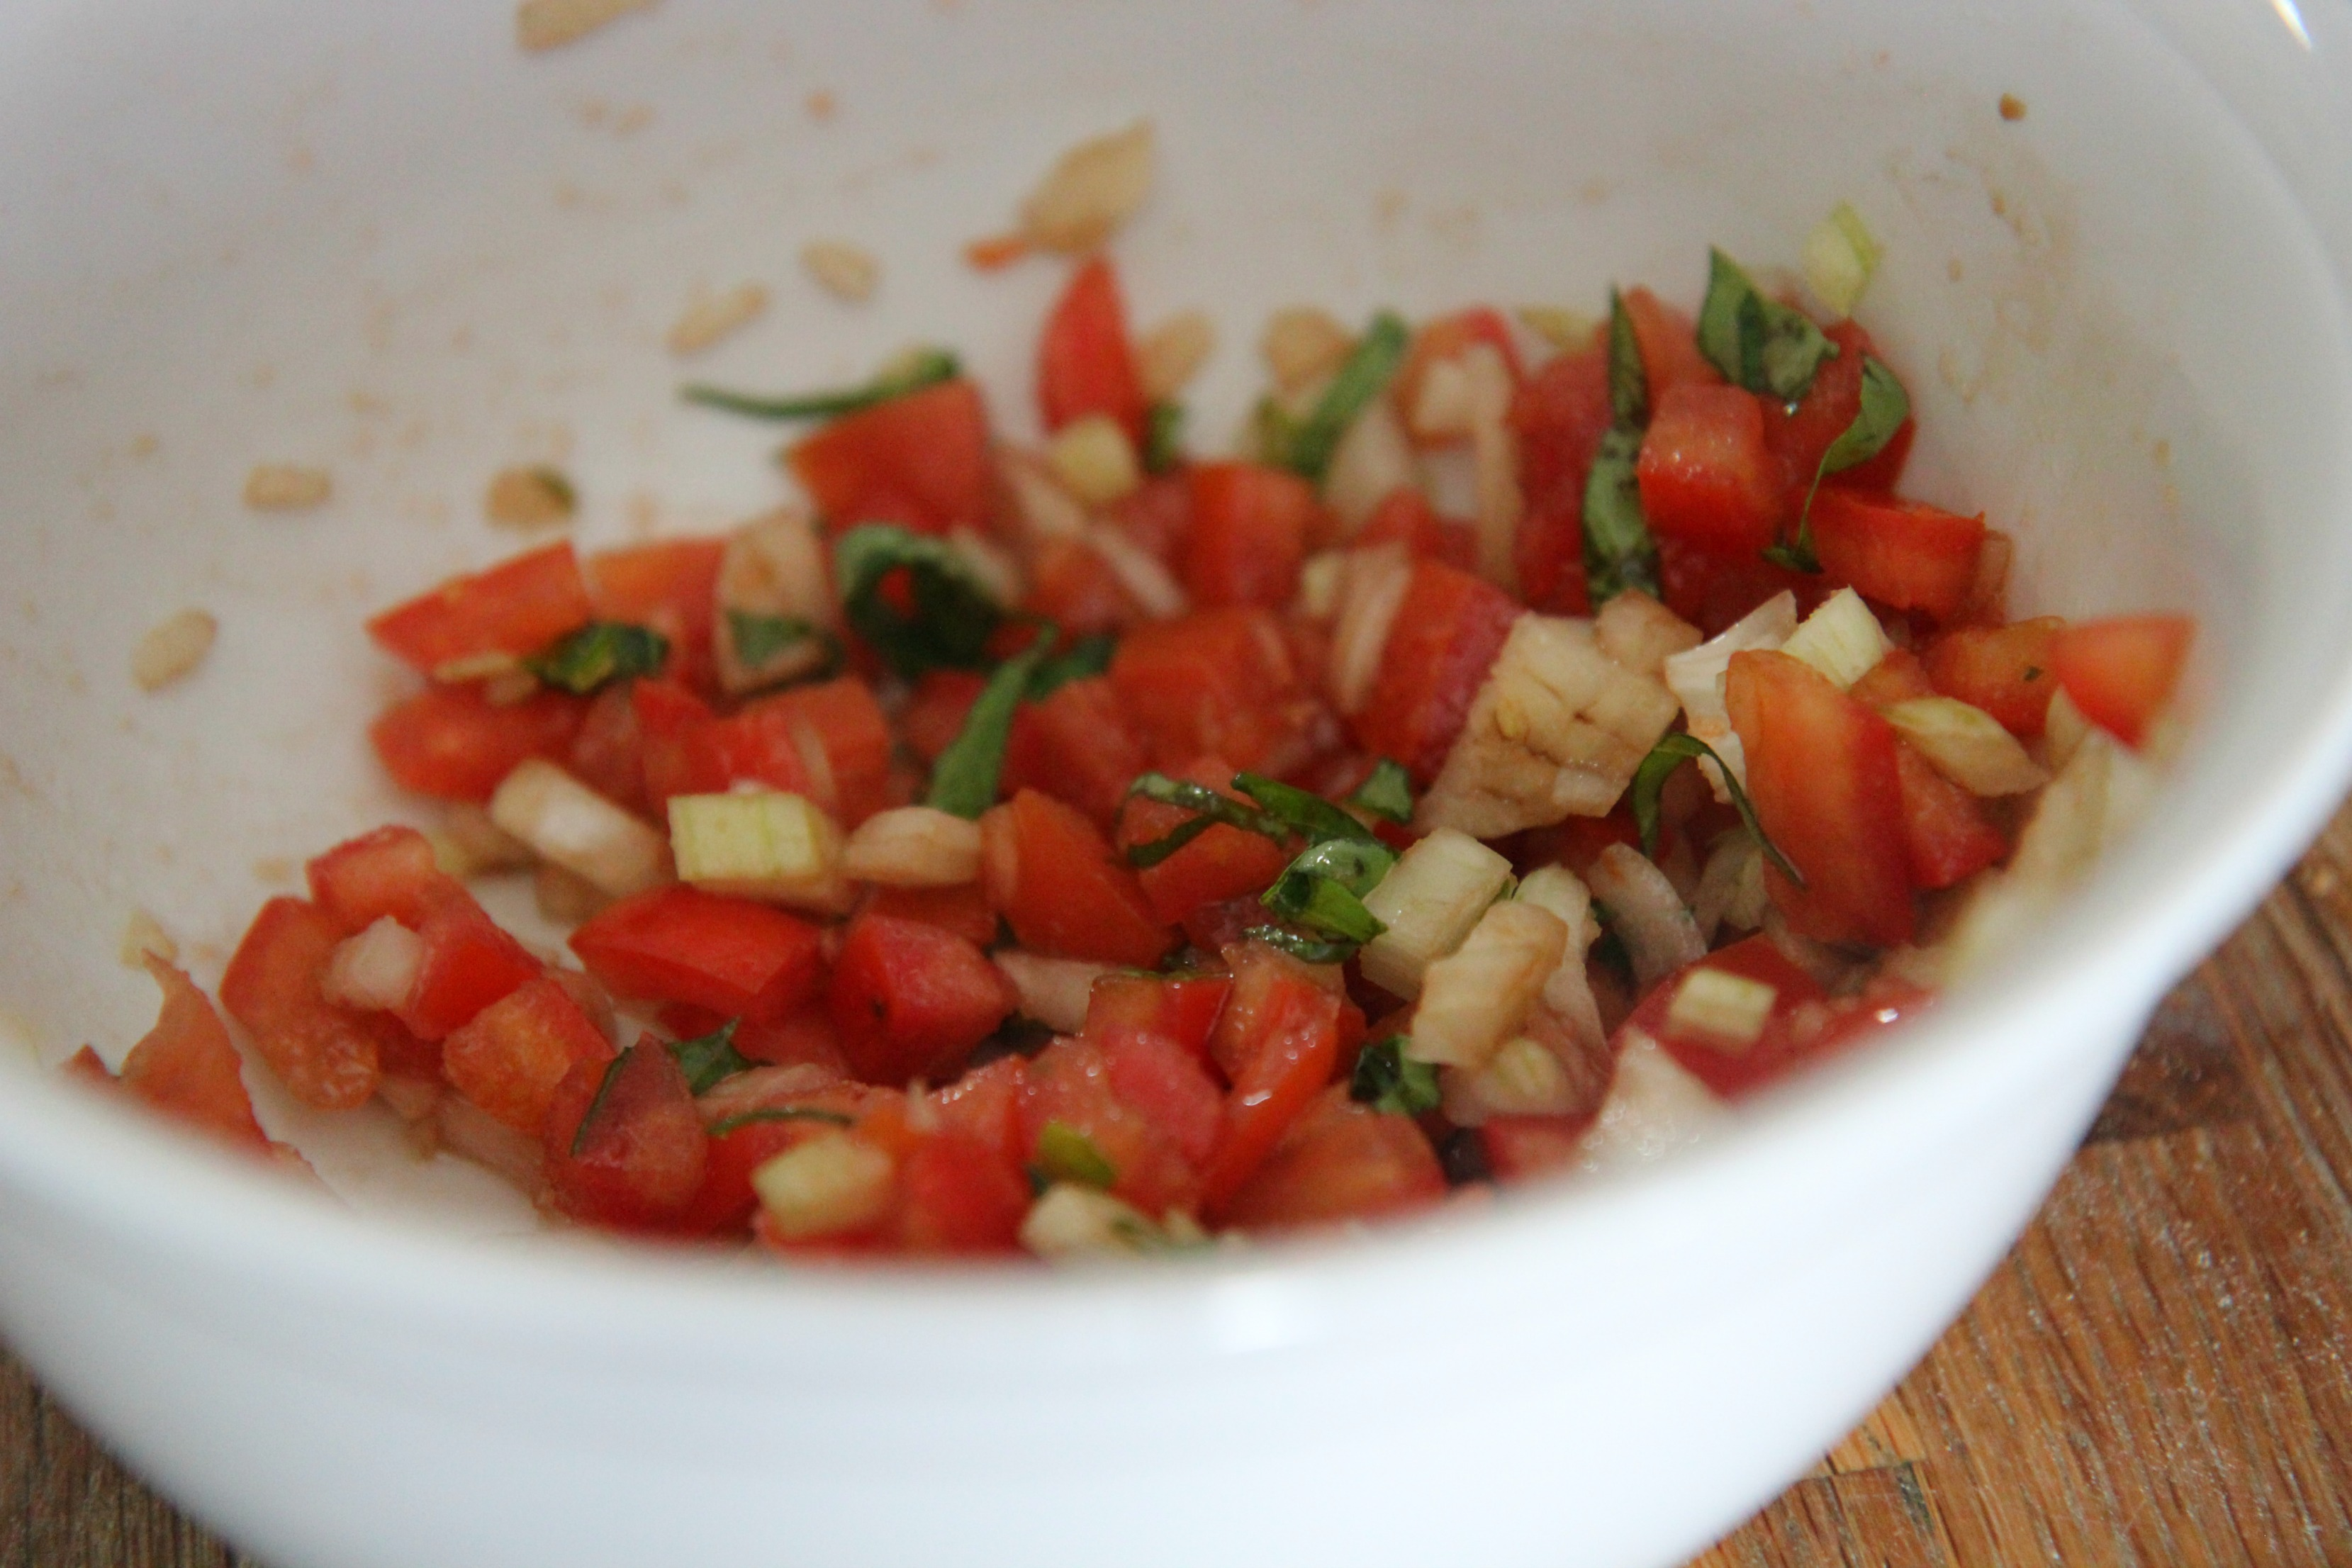 Tomatoes, onions, and basil mixed with a drizzle of balsamic dressing.